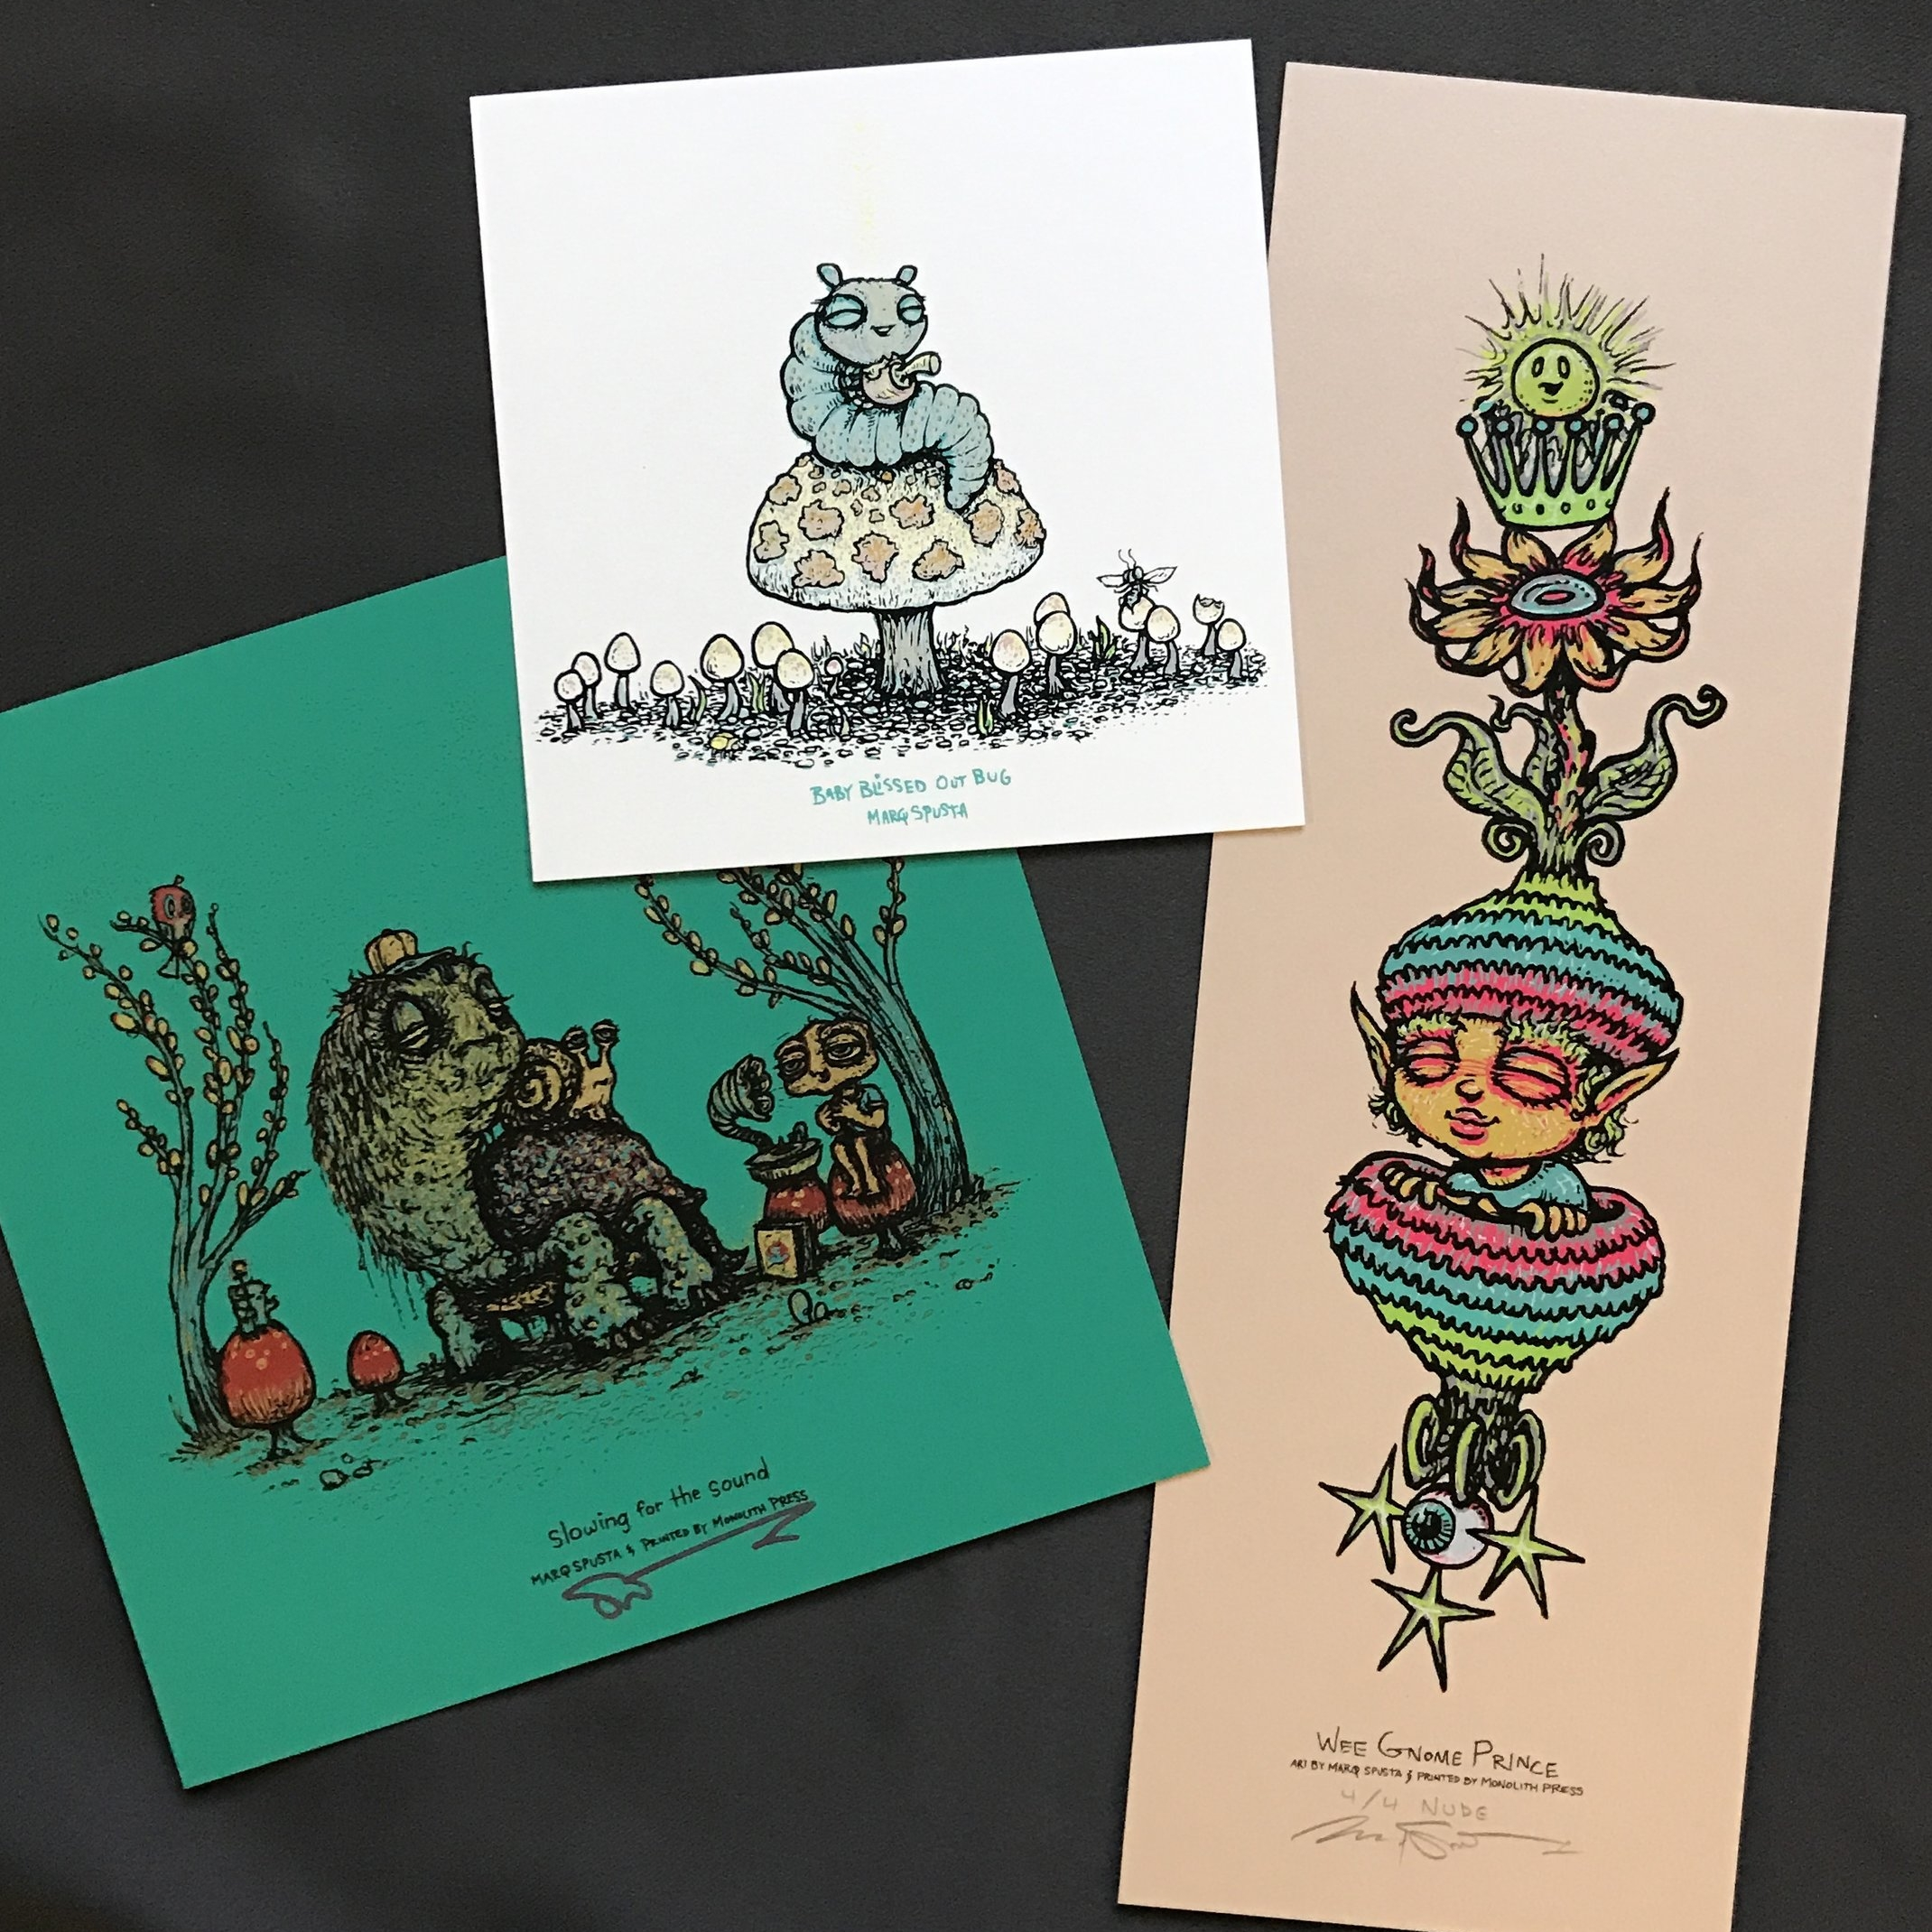 $175 #4 SFTS + Baby Bliss + Nude Wee Gnome Prince (edition of 4)